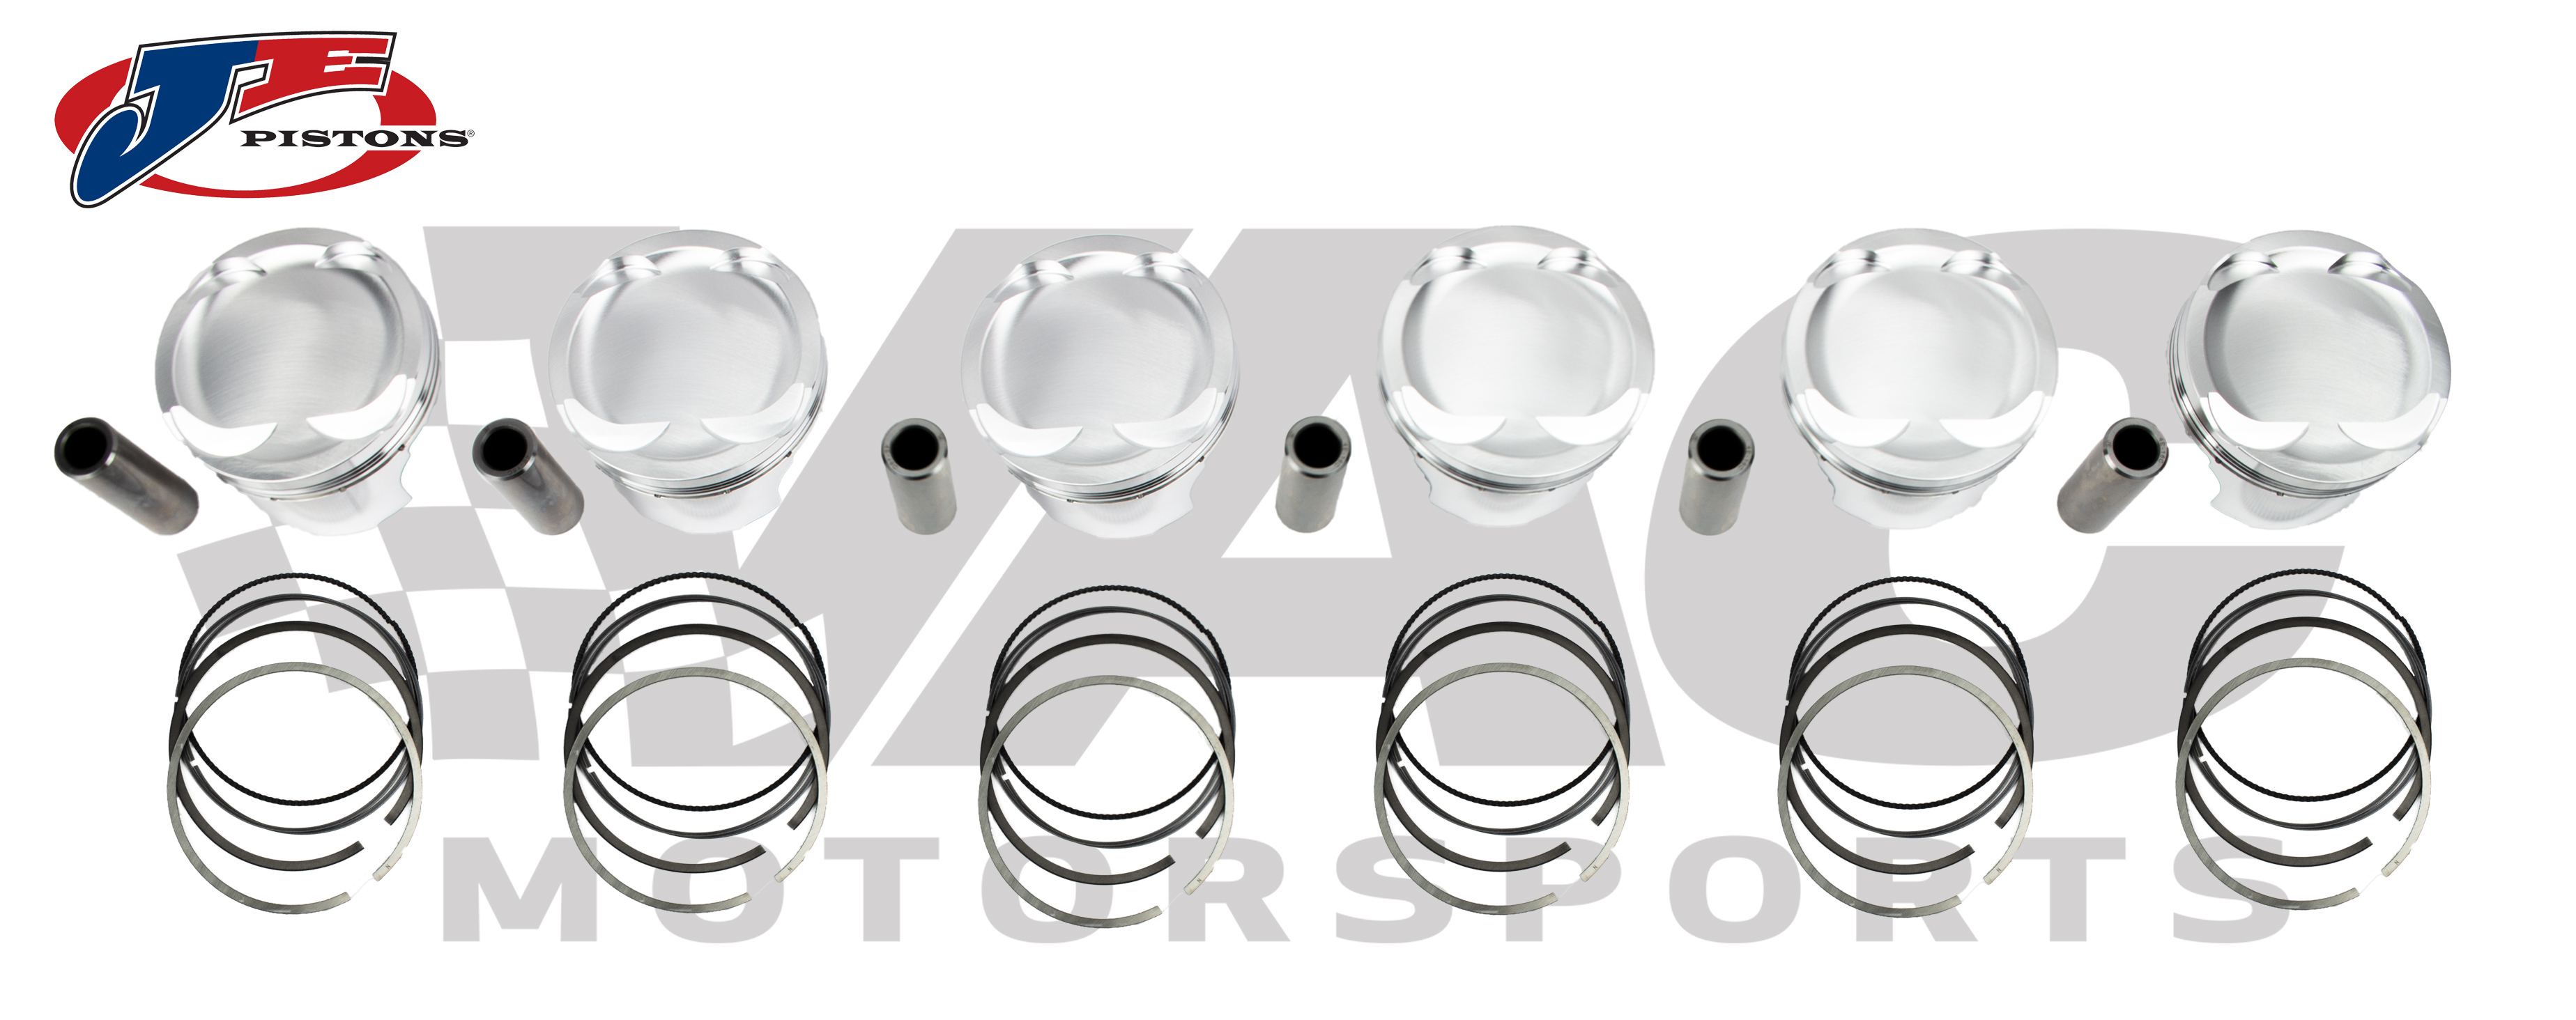 JE Pistons Forged Piston Set (BMW S50 Euro, 3.0L) THUMBNAIL